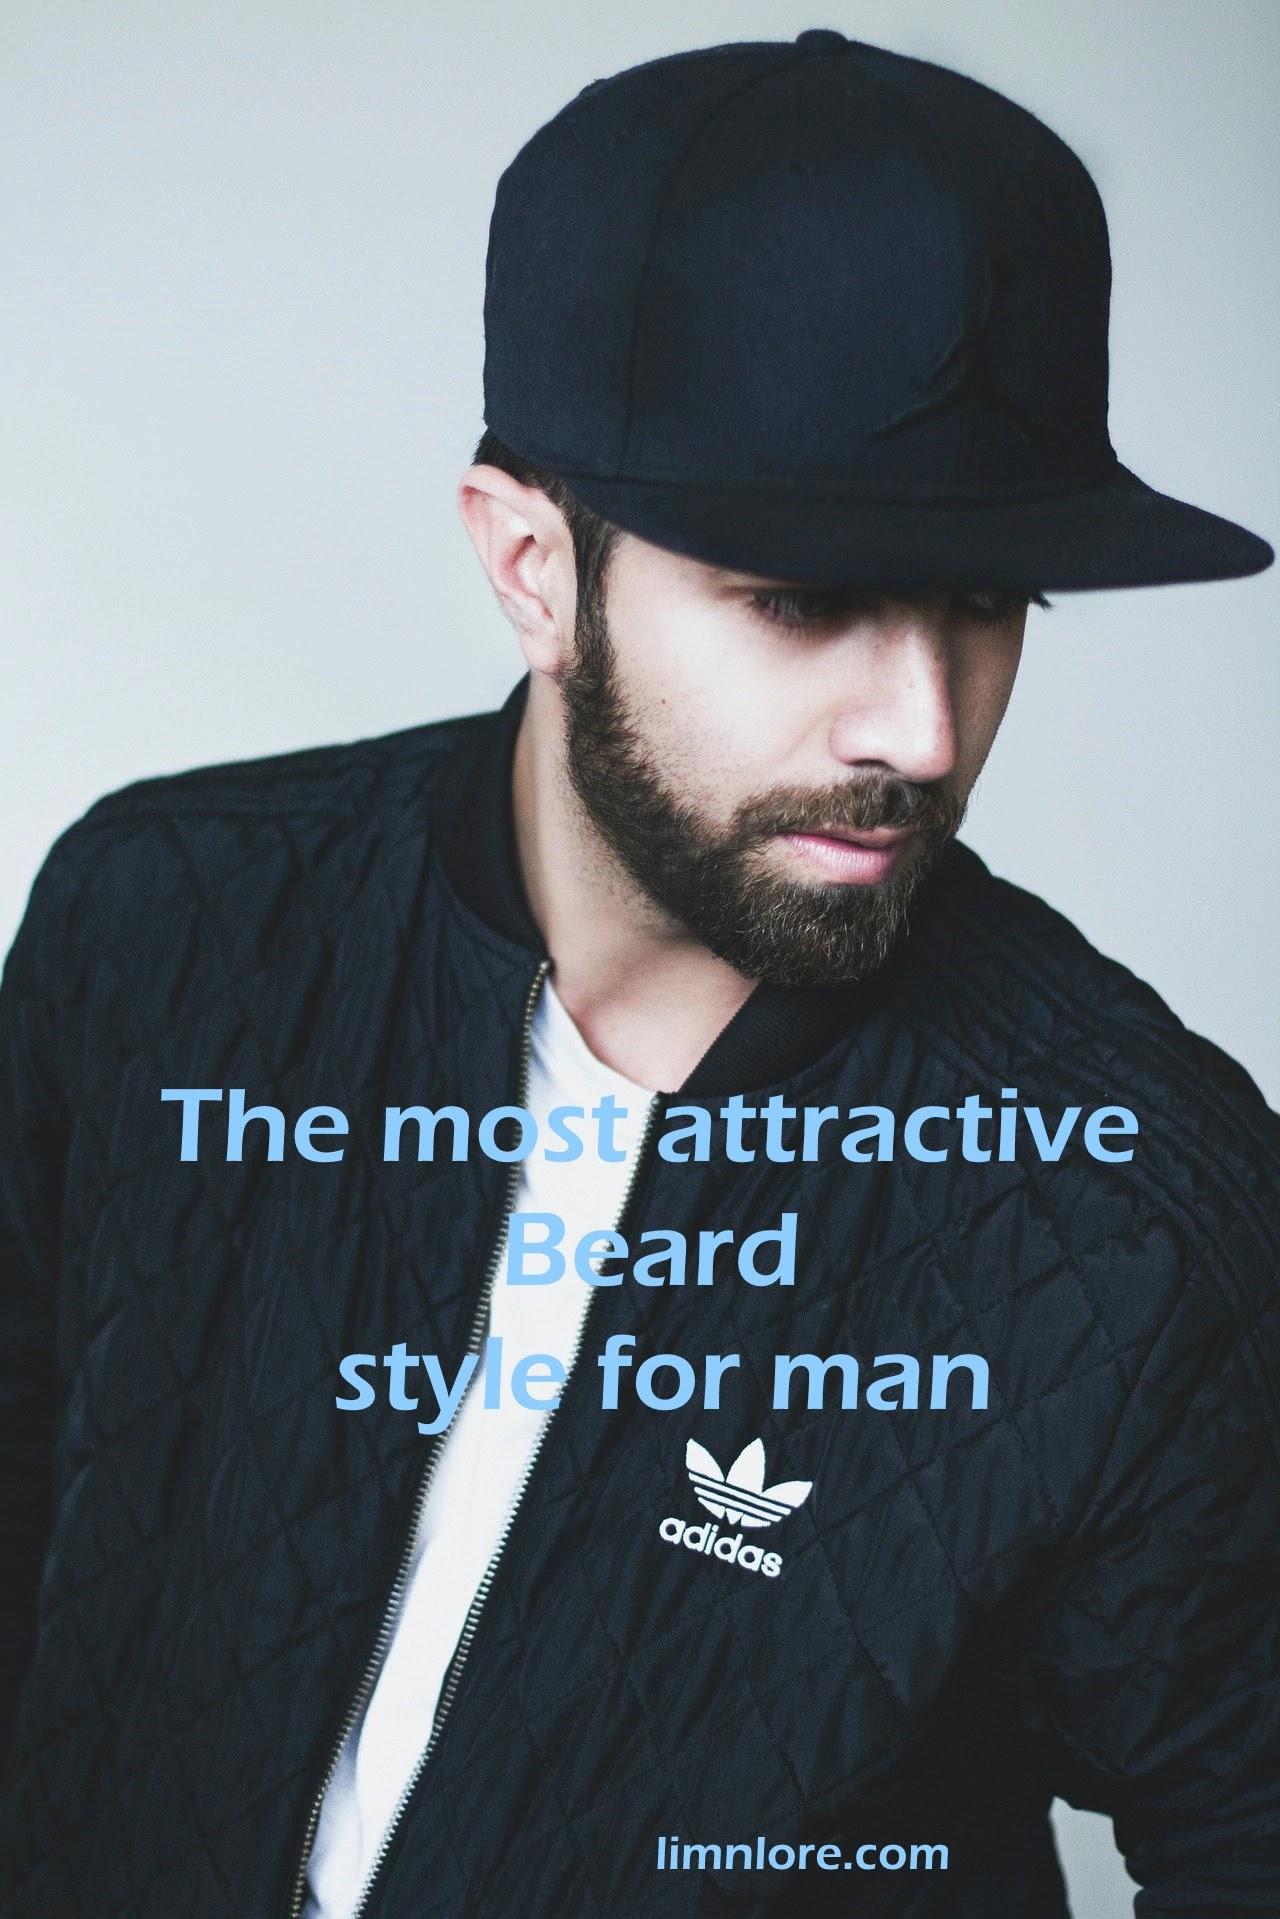 Heavy Stubble beard style attractive facts How to get it